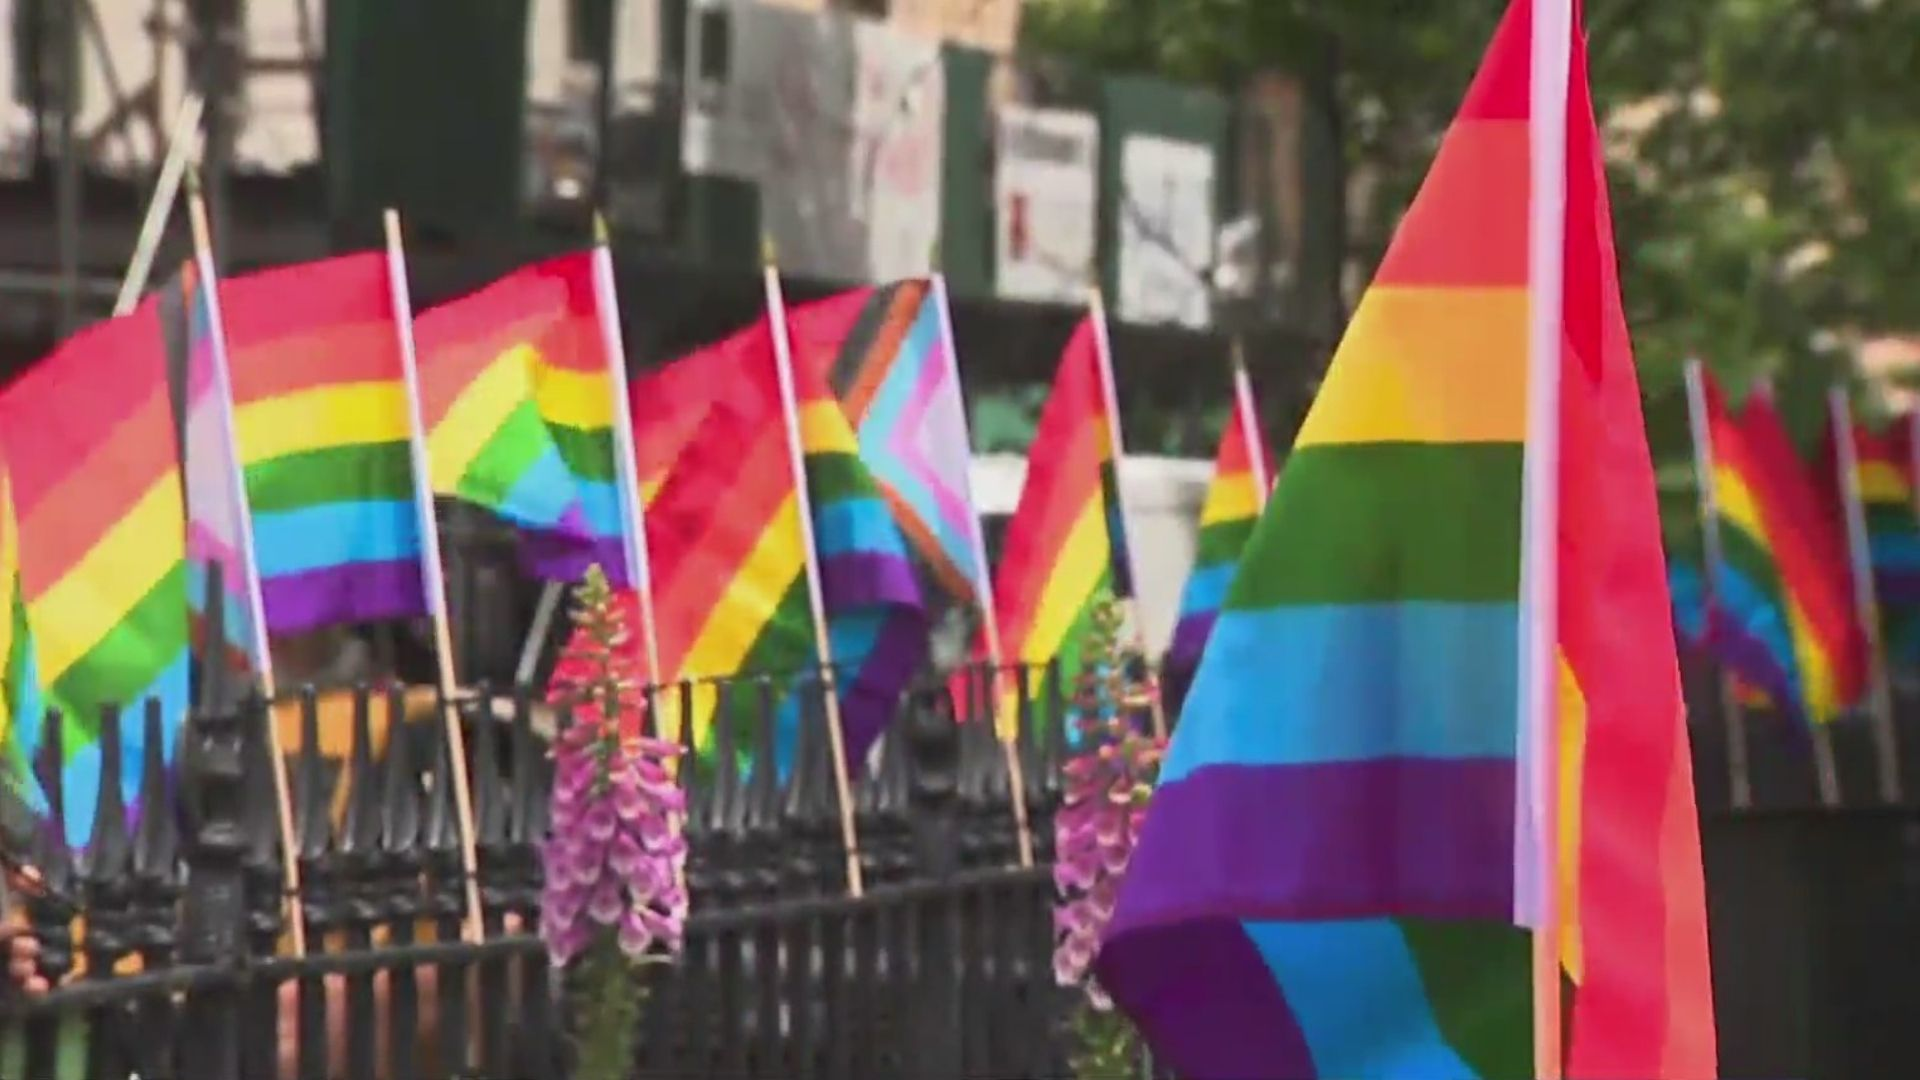 LGBTQ flags outside Stonewall during NYC Pride weekend